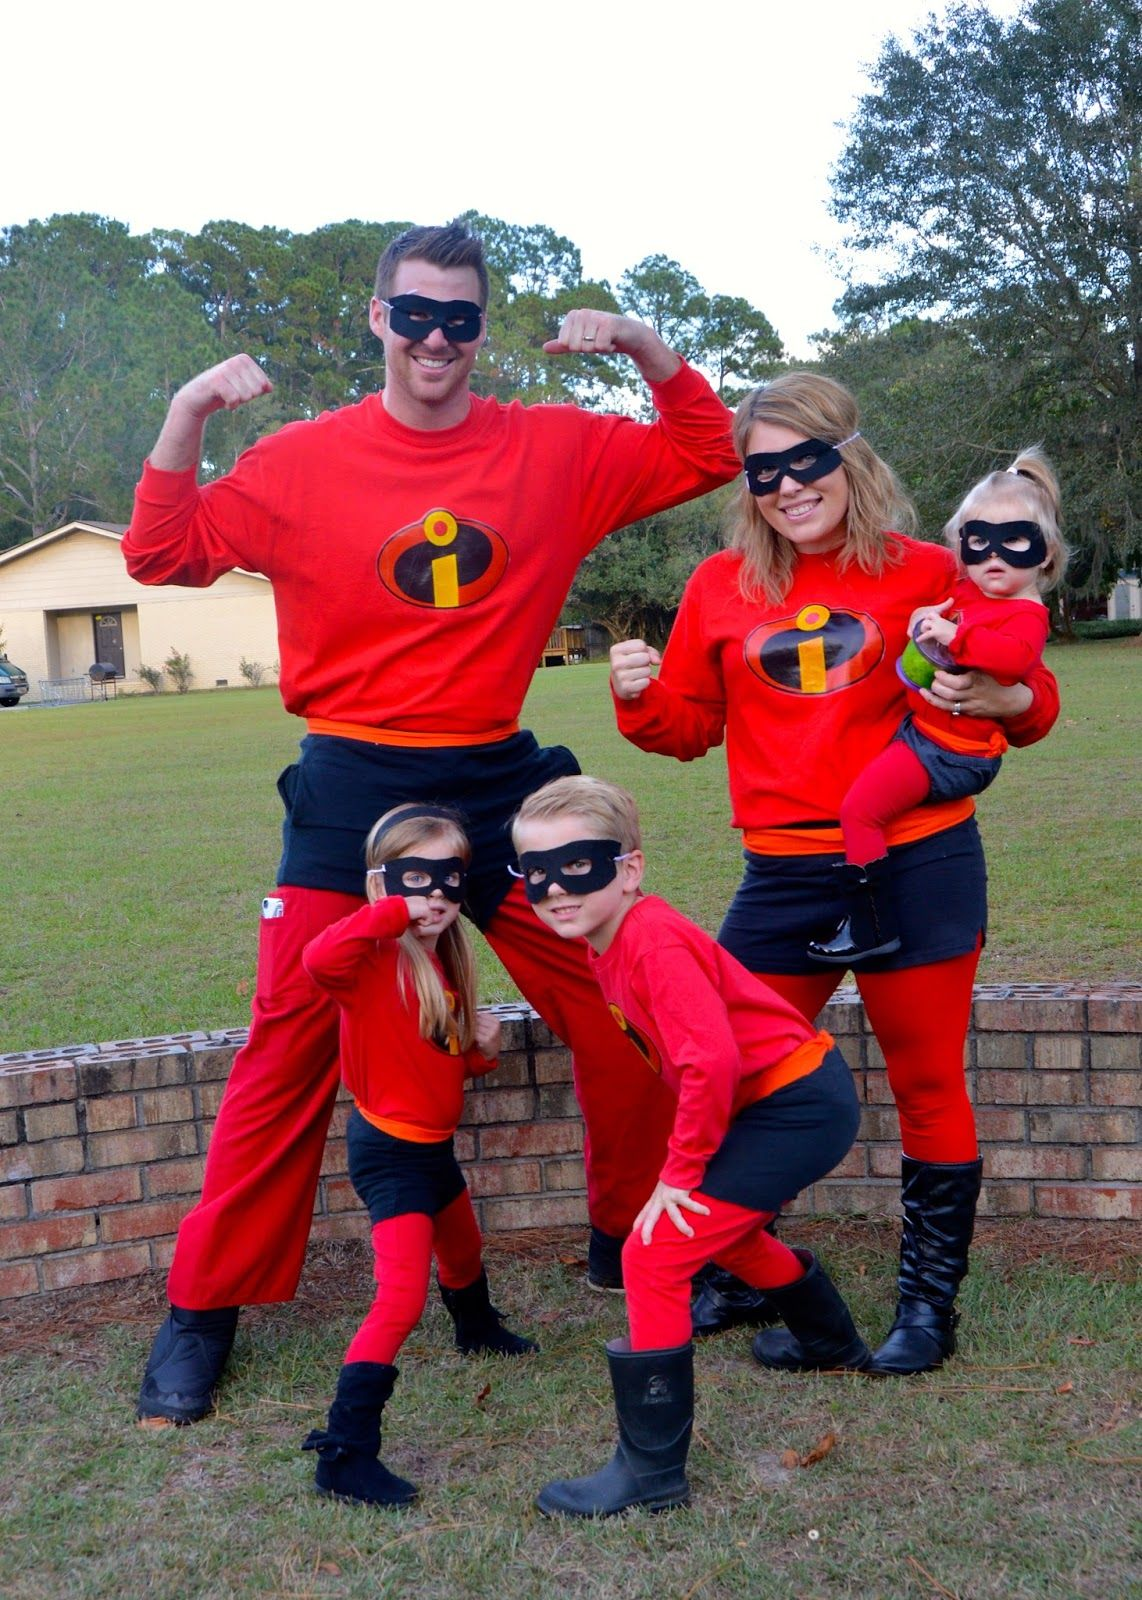 Easy Affordable DIY Halloween Costumes for a family of 5. Family themed! Incredibles perfect for Disneyu0027s Mickeyu0027s Not So Scary Halloween Party (MNSSHP) & Incredibles Halloween | Pinterest | Scary halloween DIY Halloween ...